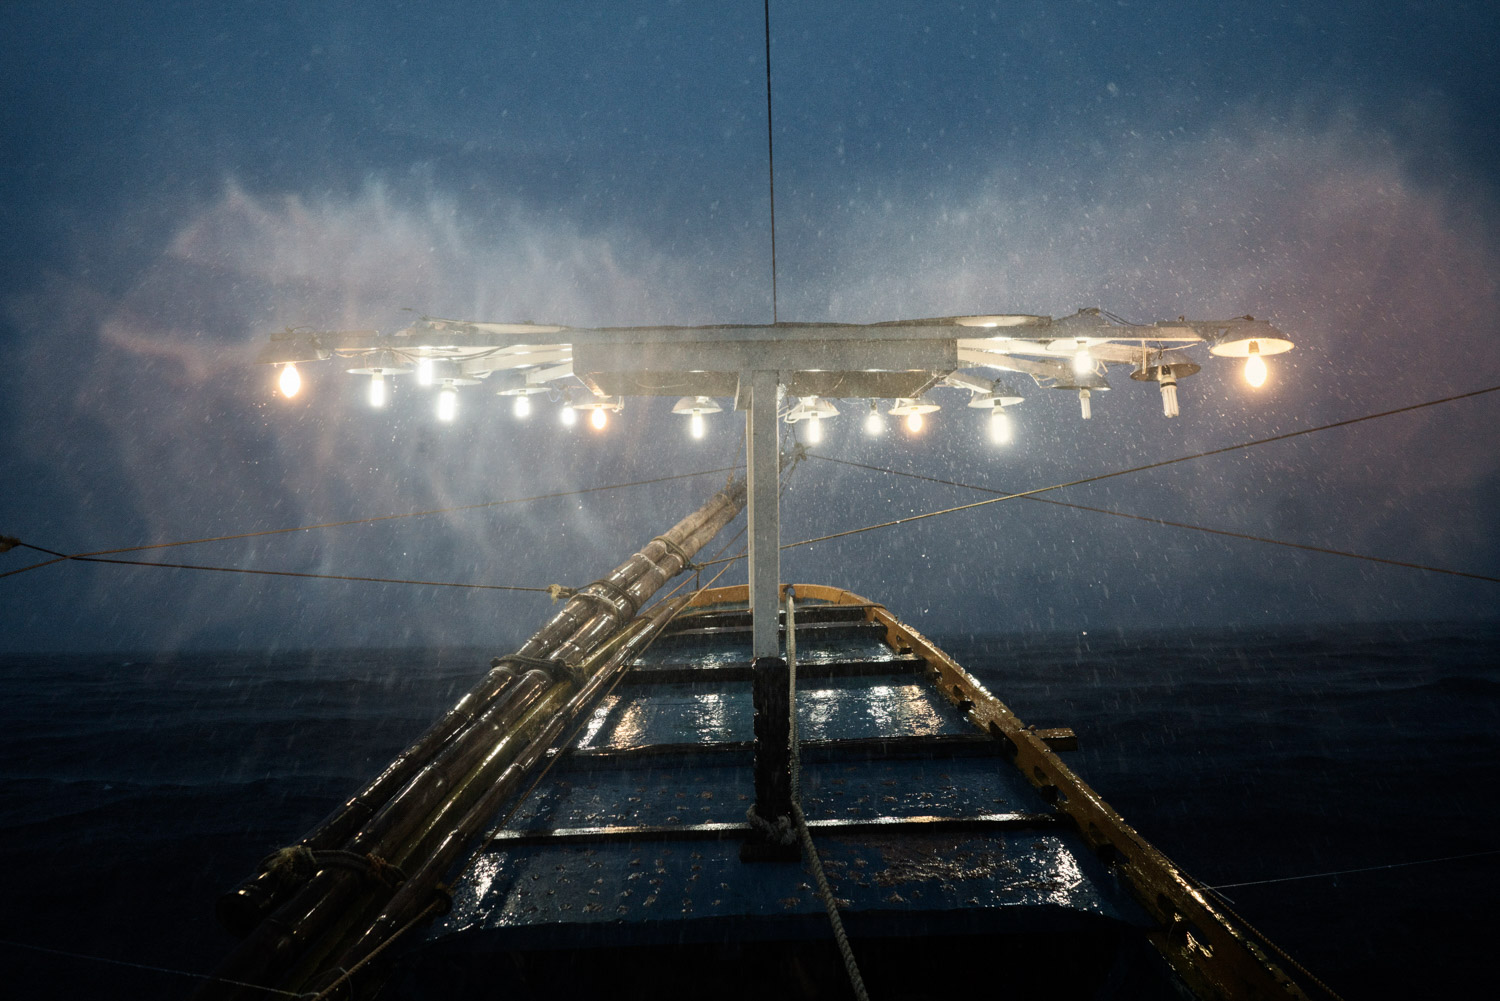 The lights used to attract fish towards the boat are seen during a storm on 'Melissa' - a 15.53 gross ton basnig fishing boat - while they head out to fishing grounds in national waters close to the South China Sea, from Quezon, Palawan, The Philippines on June 27th, 2016.